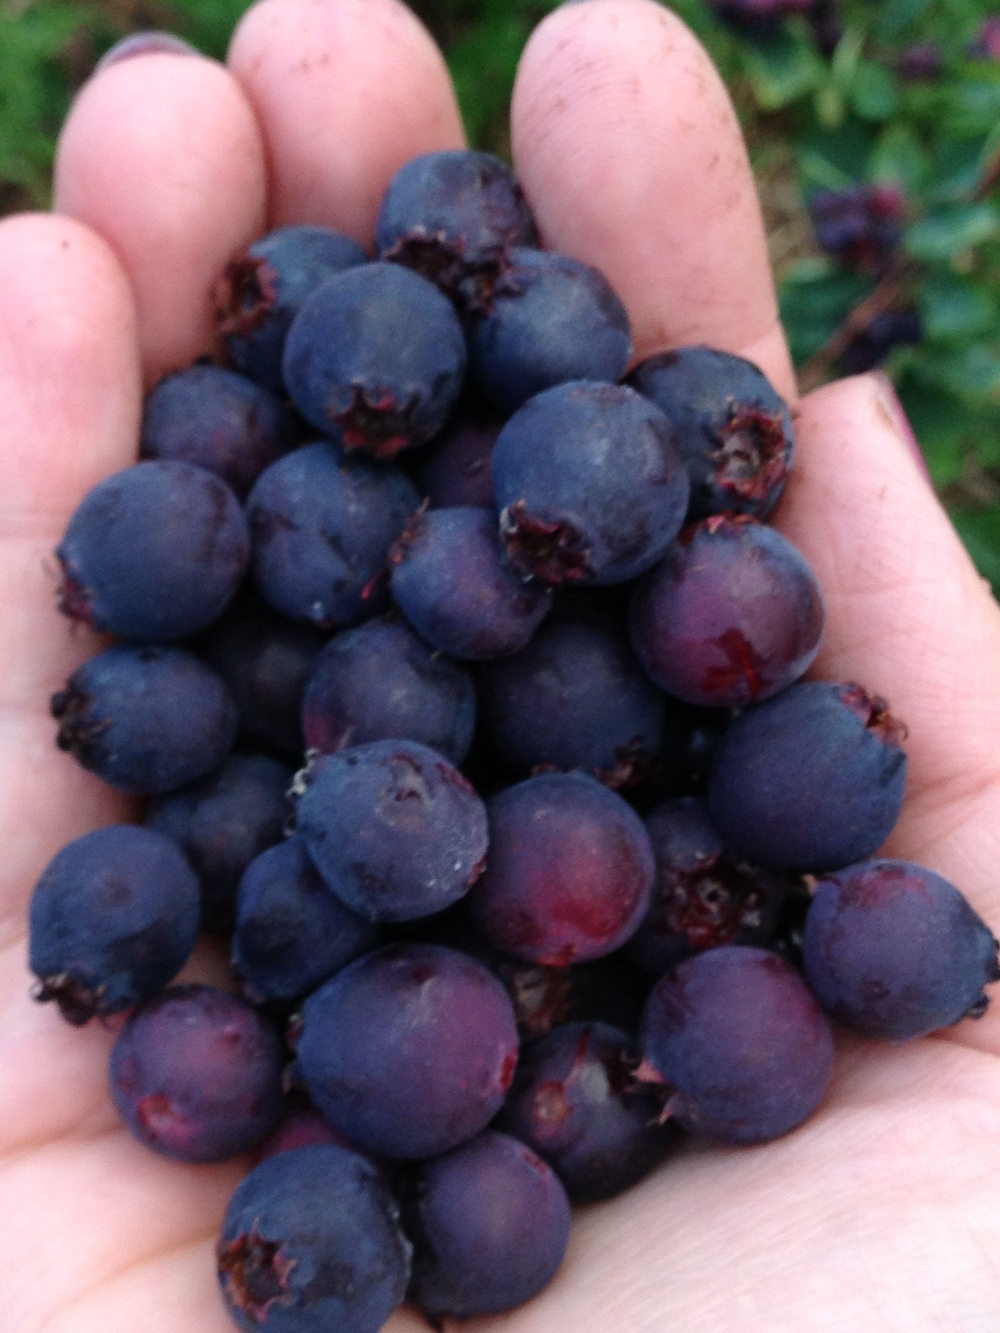 Saskatoon, the size of large blueberries, but with a more dense flesh and cherry-like flavor.